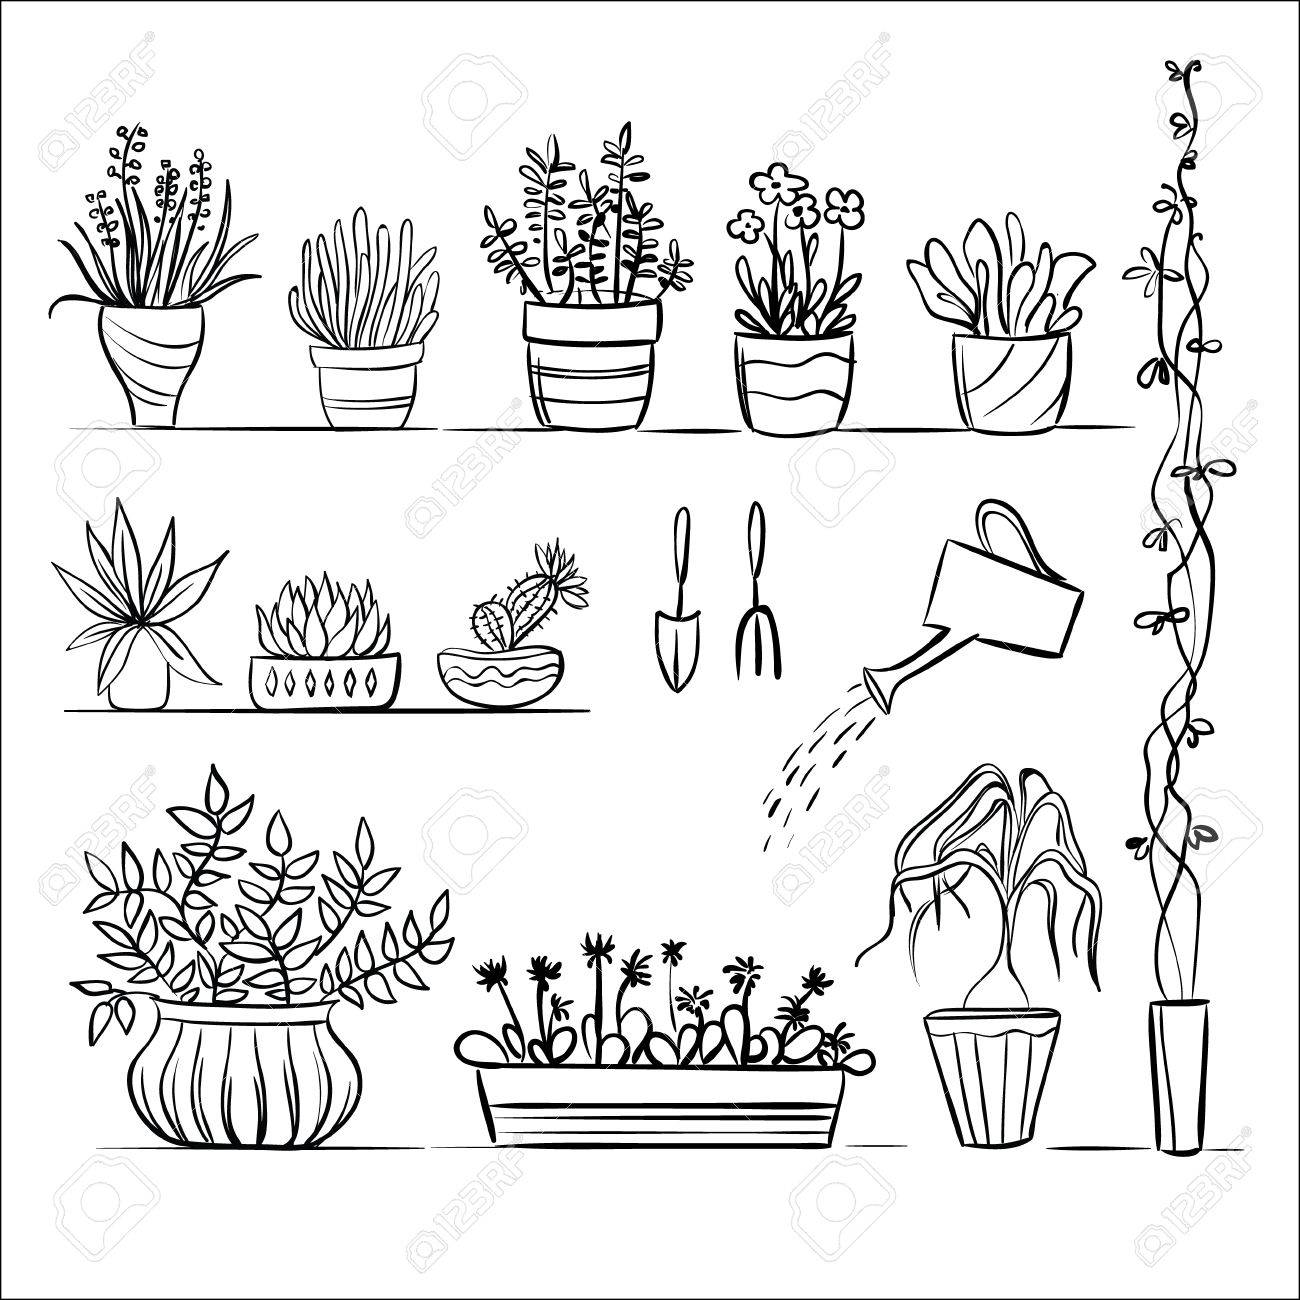 Pot Plants And Tools Sketch Hand Drawing Set Royalty Free Cliparts Vectors And Stock Illustration Image 42171491